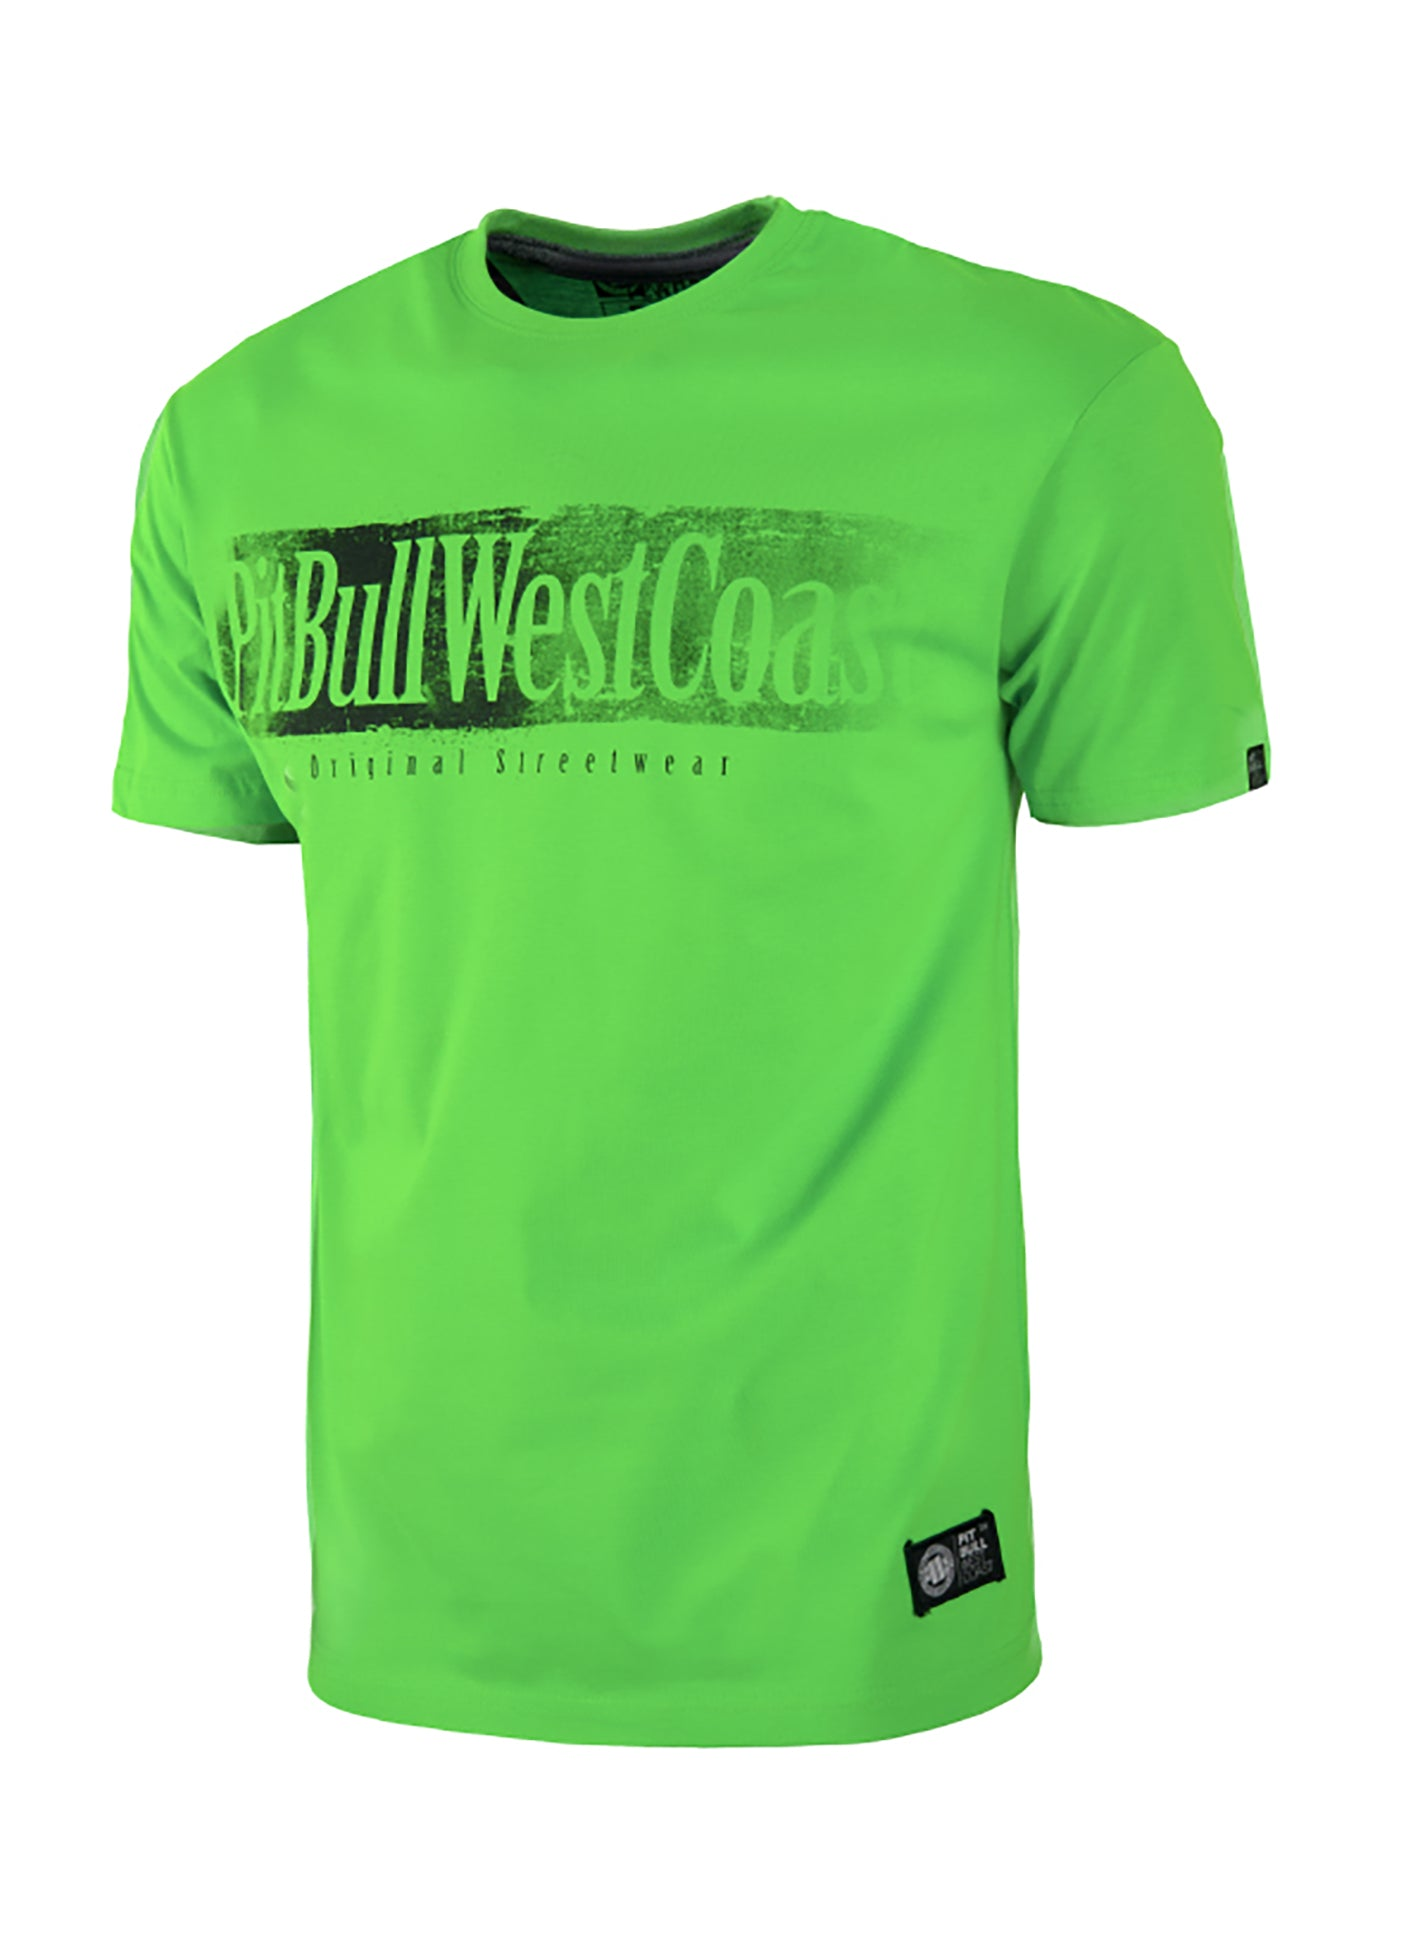 T-shirt Sunlight Green - pitbullwestcoast